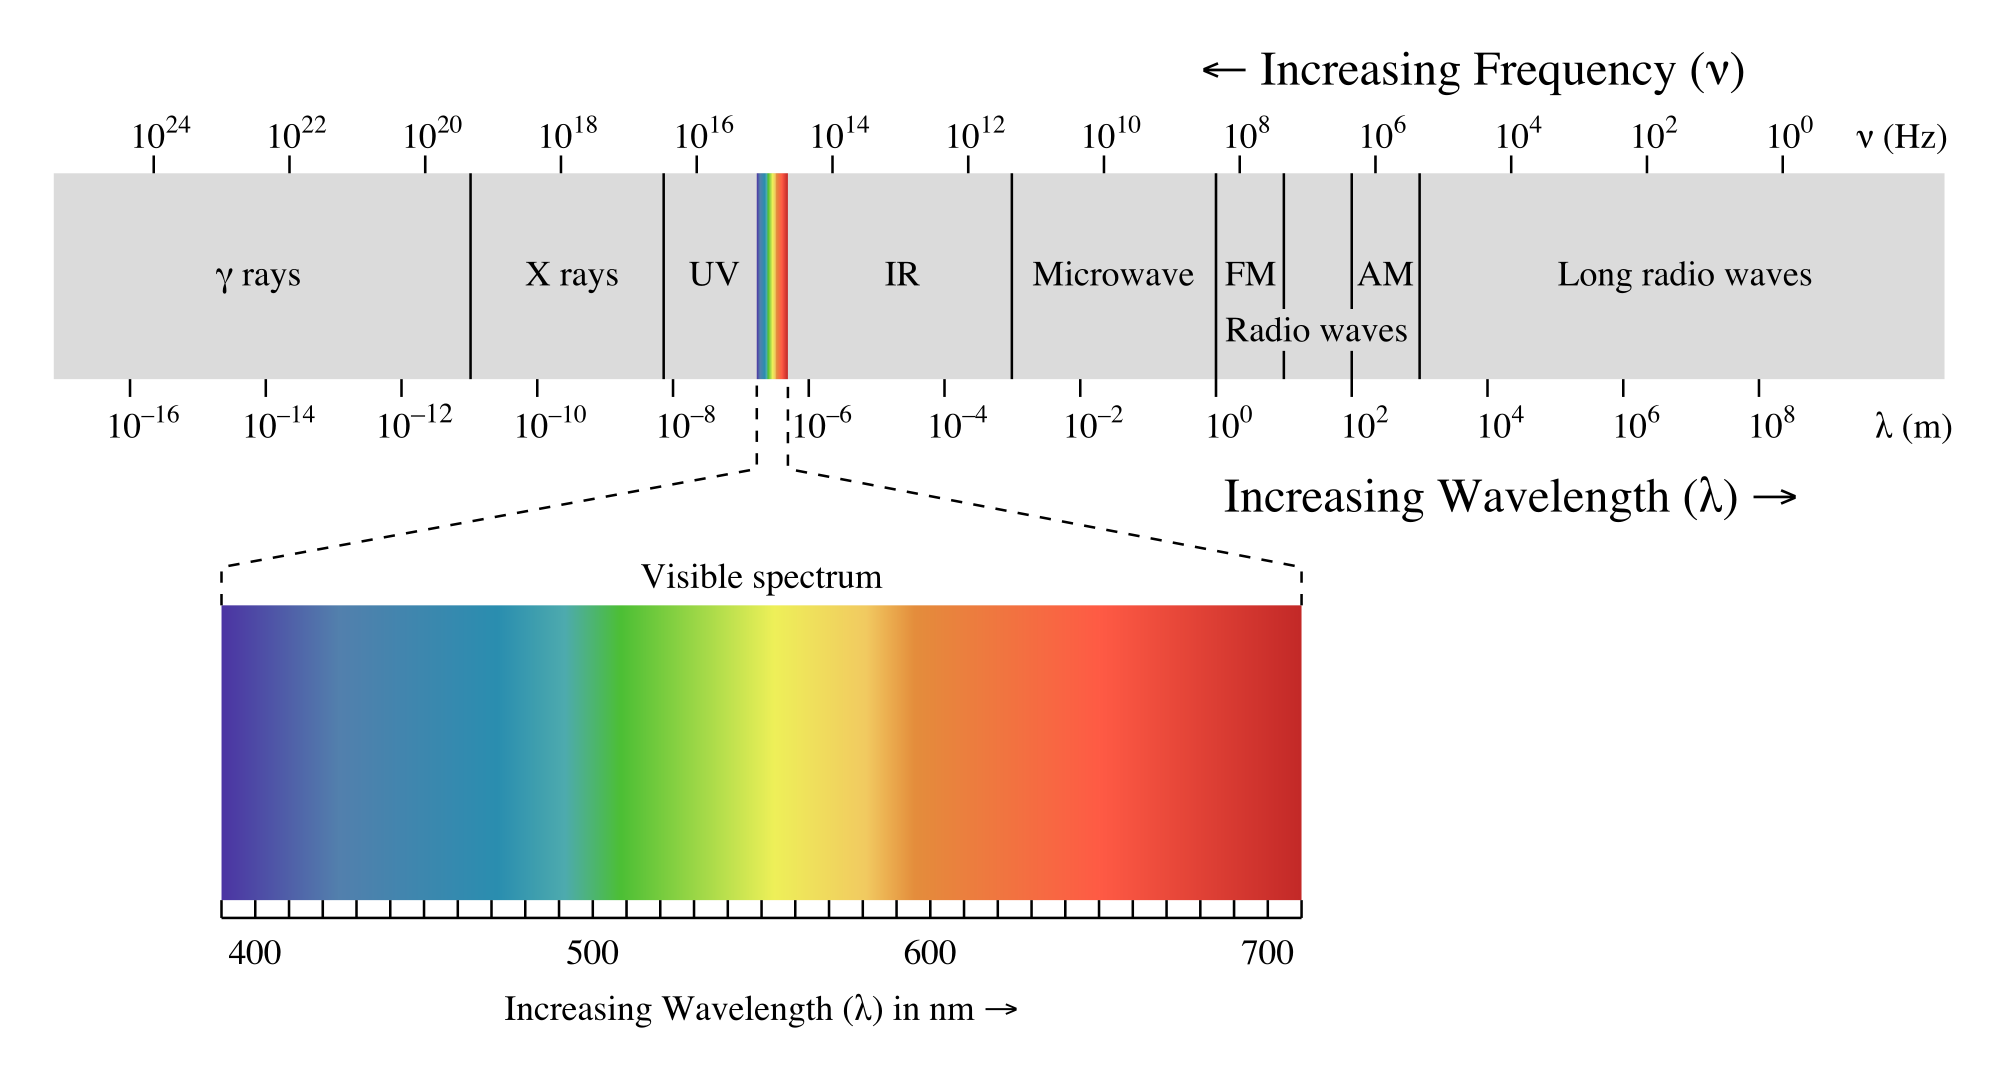 waves at the right side have the longest wavelengths and least energy.